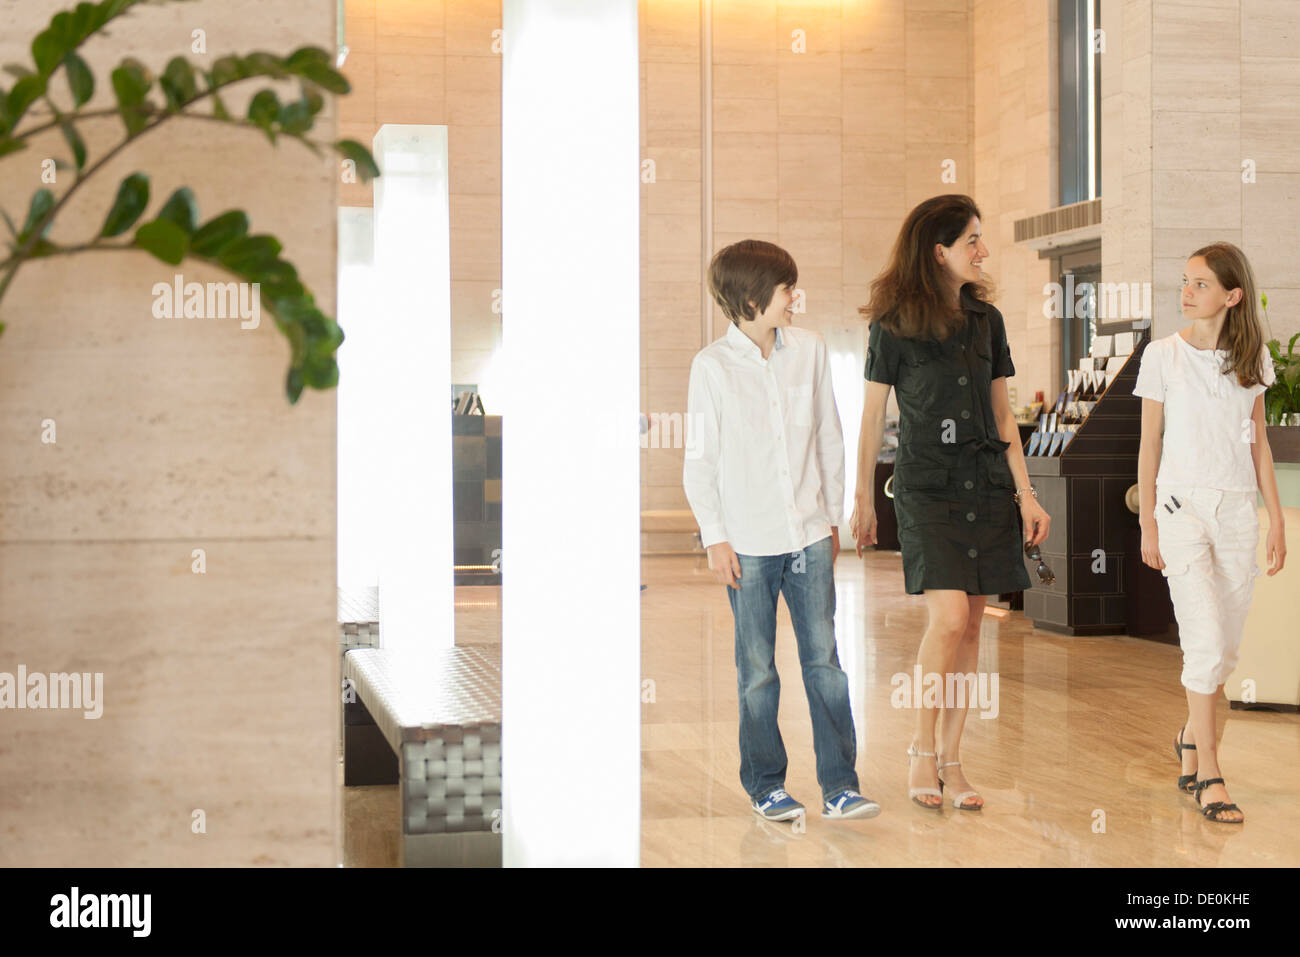 Mother and children walking in hotel lobby - Stock Image